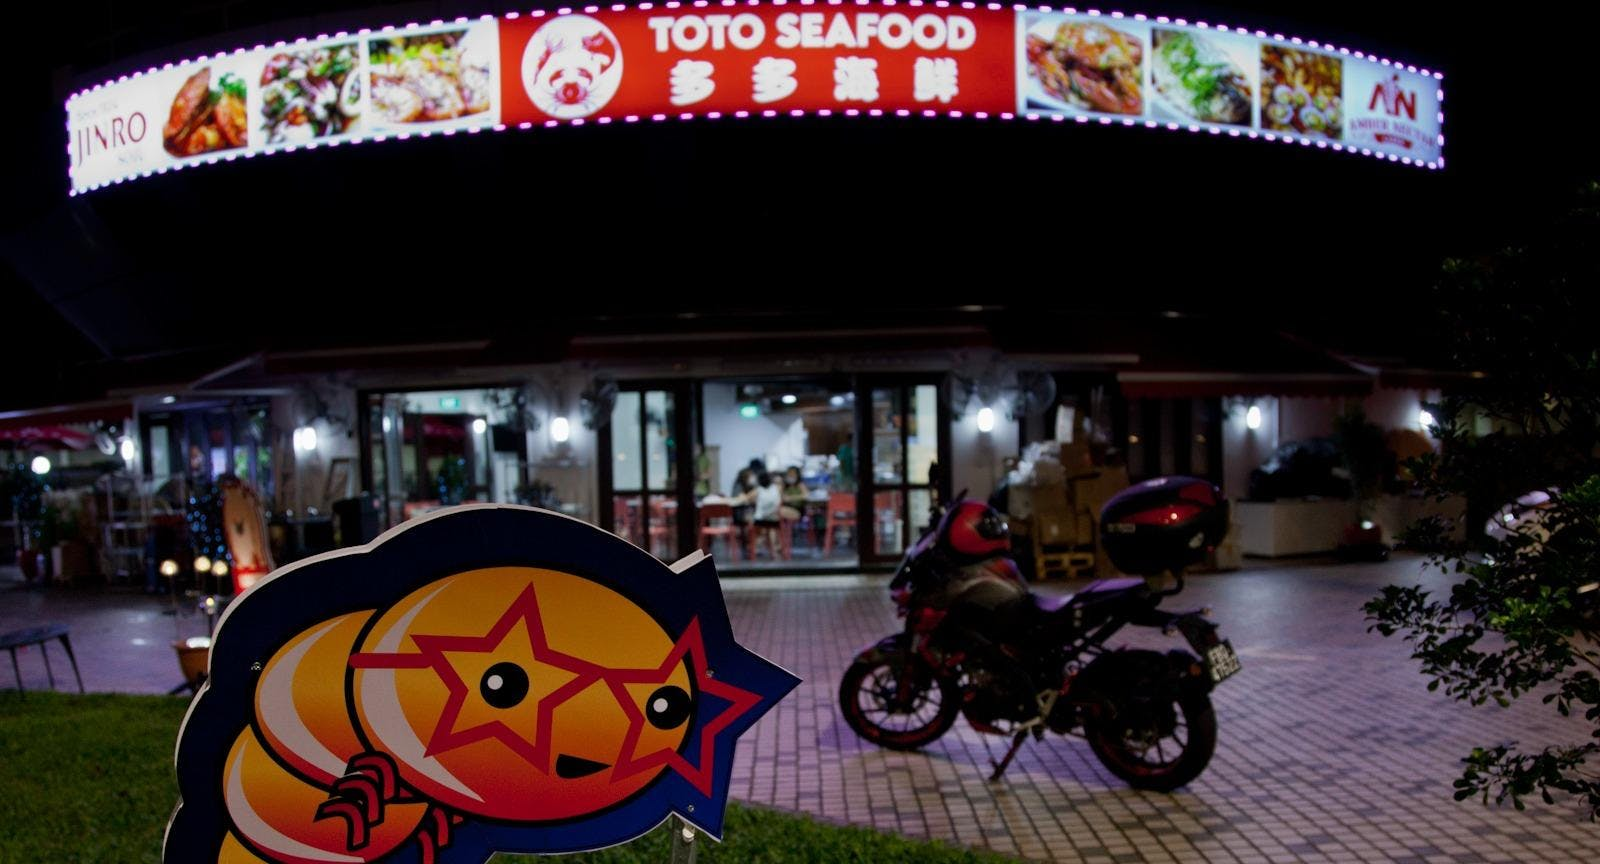 Photo of restaurant Toto Seafood in Geylang, Singapore